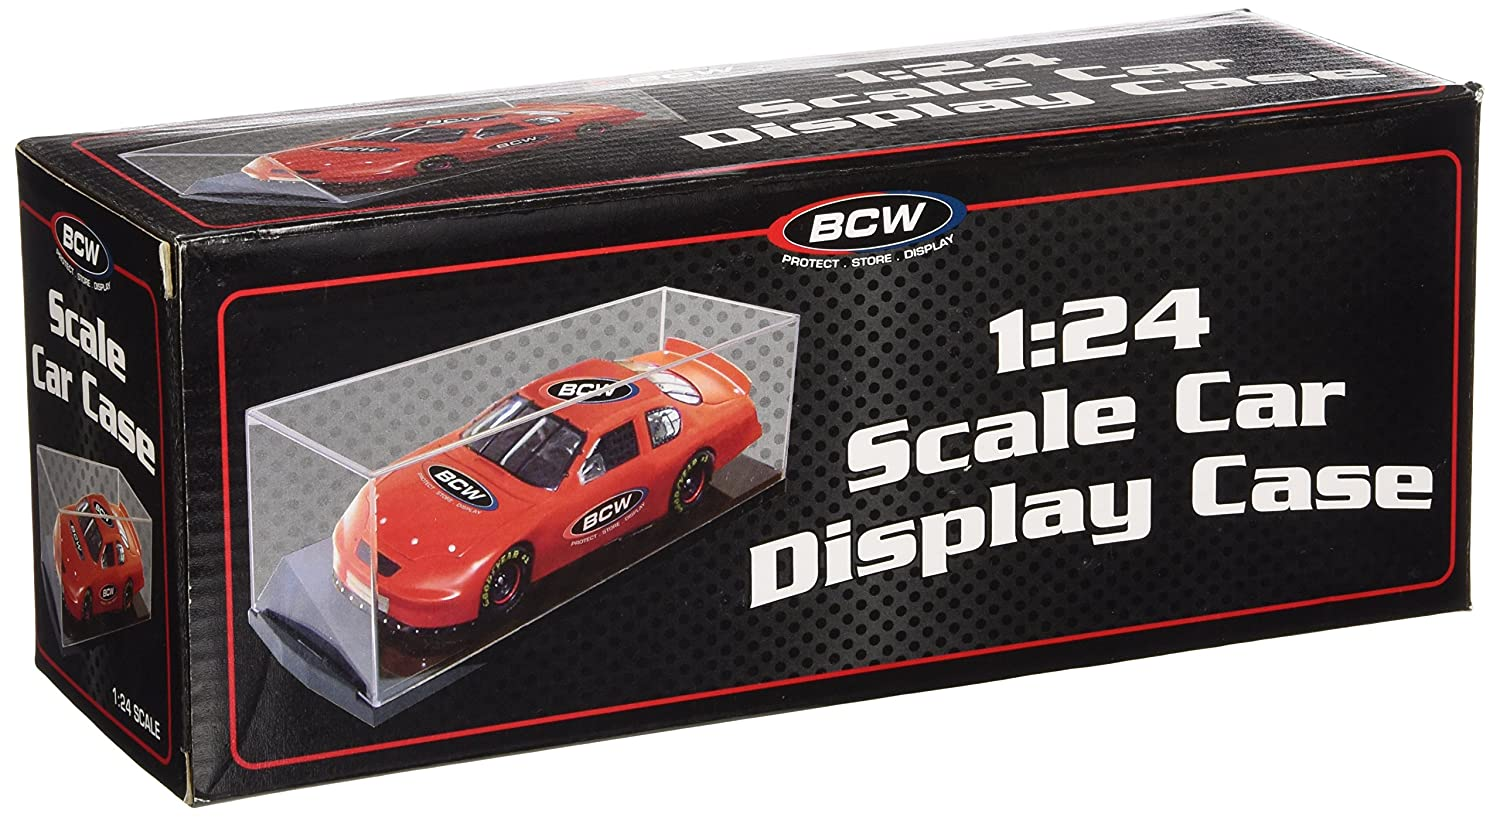 BCW 1:24 Scale Car Display Case - Die Cast NASCAR, Racing - Sports Memorabilia Display Case - Collecting Supplies